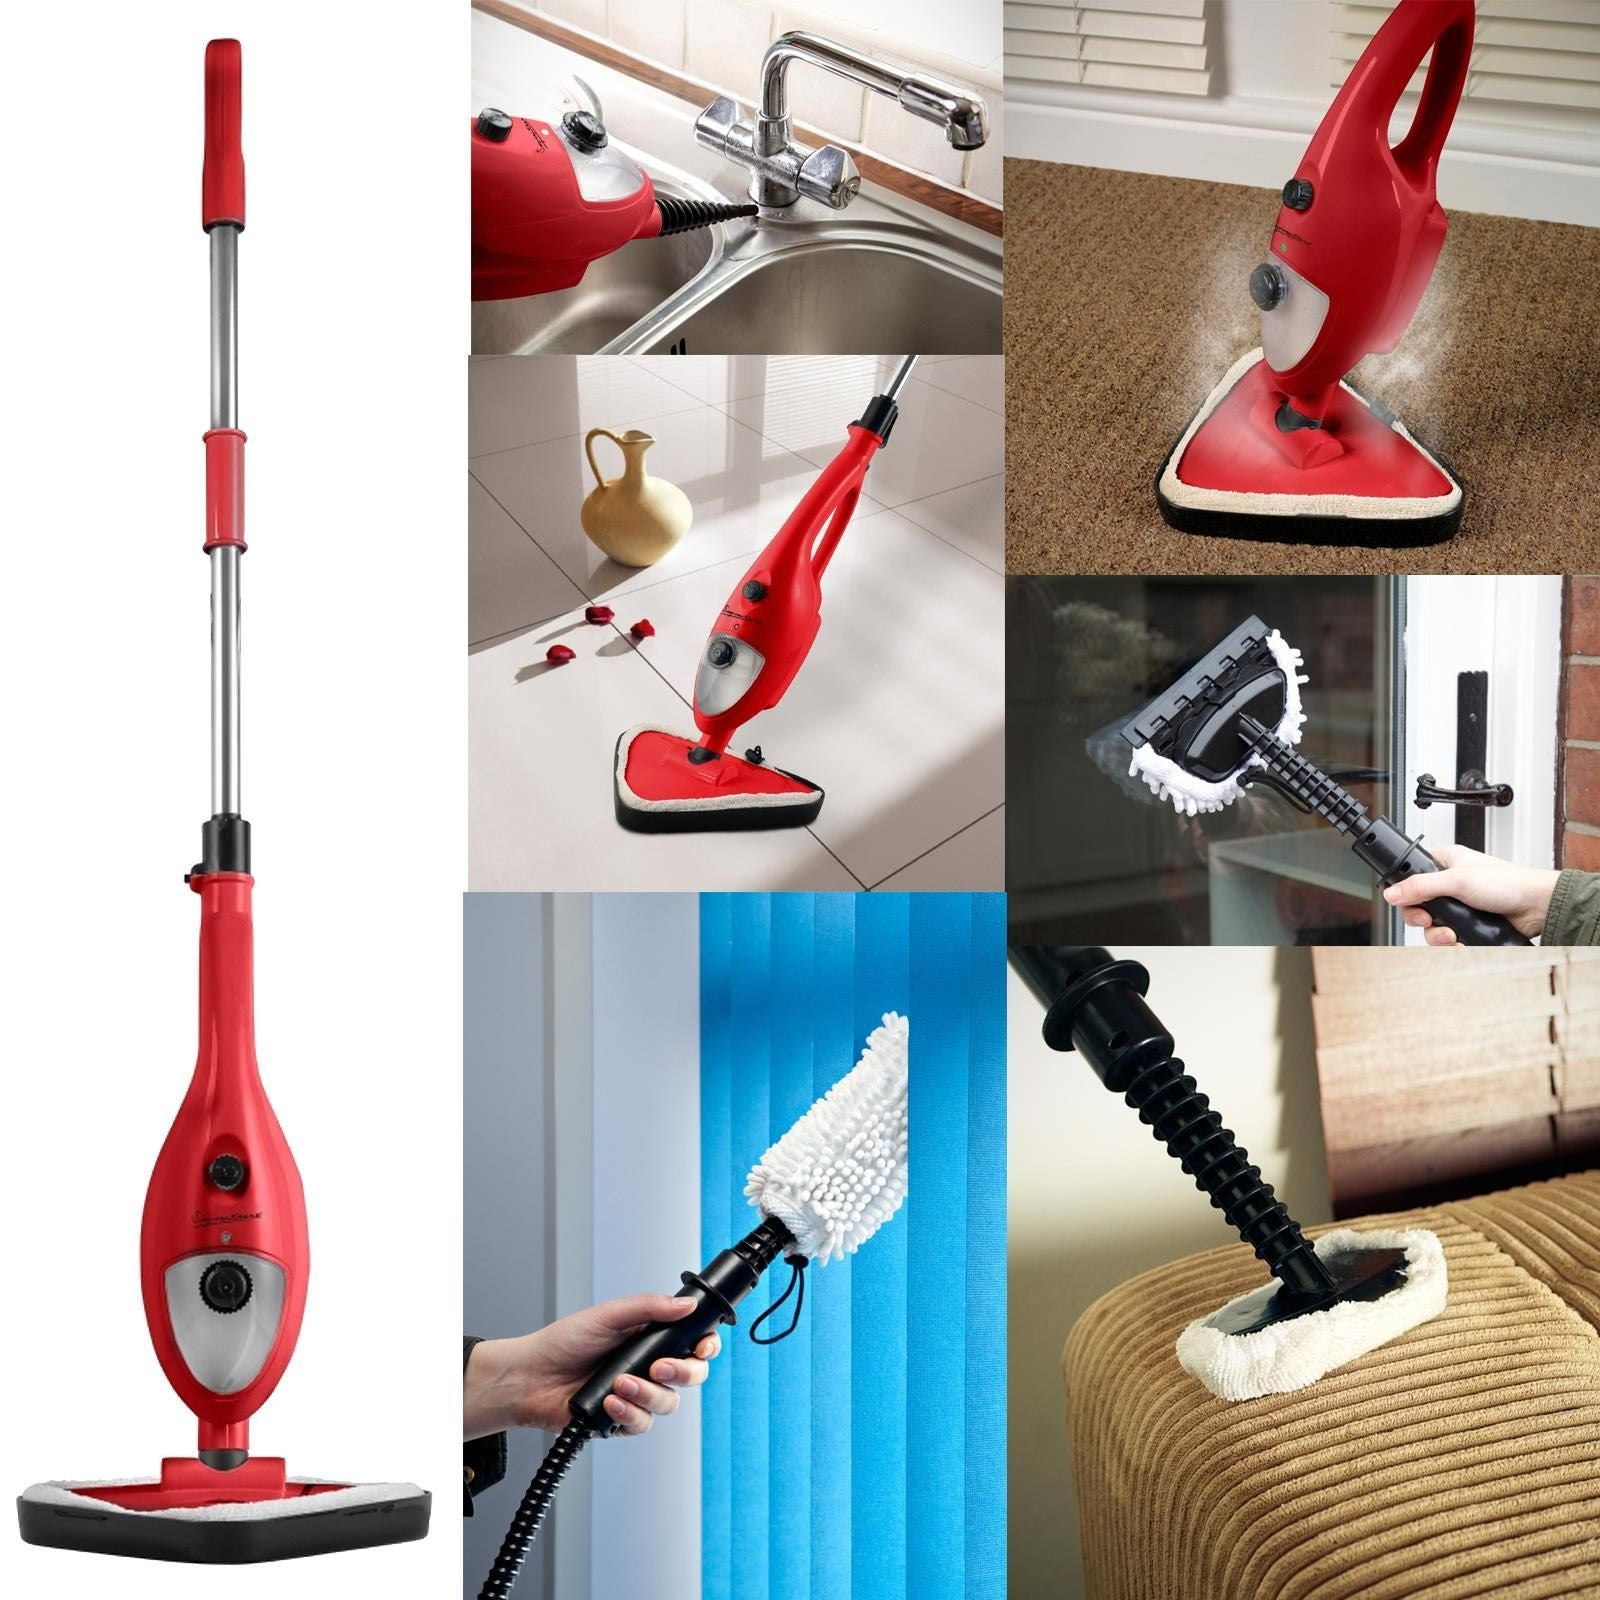 6 in 1 Steam Cleaner Floor Kitchen Carpet Handheld Steamer Mop